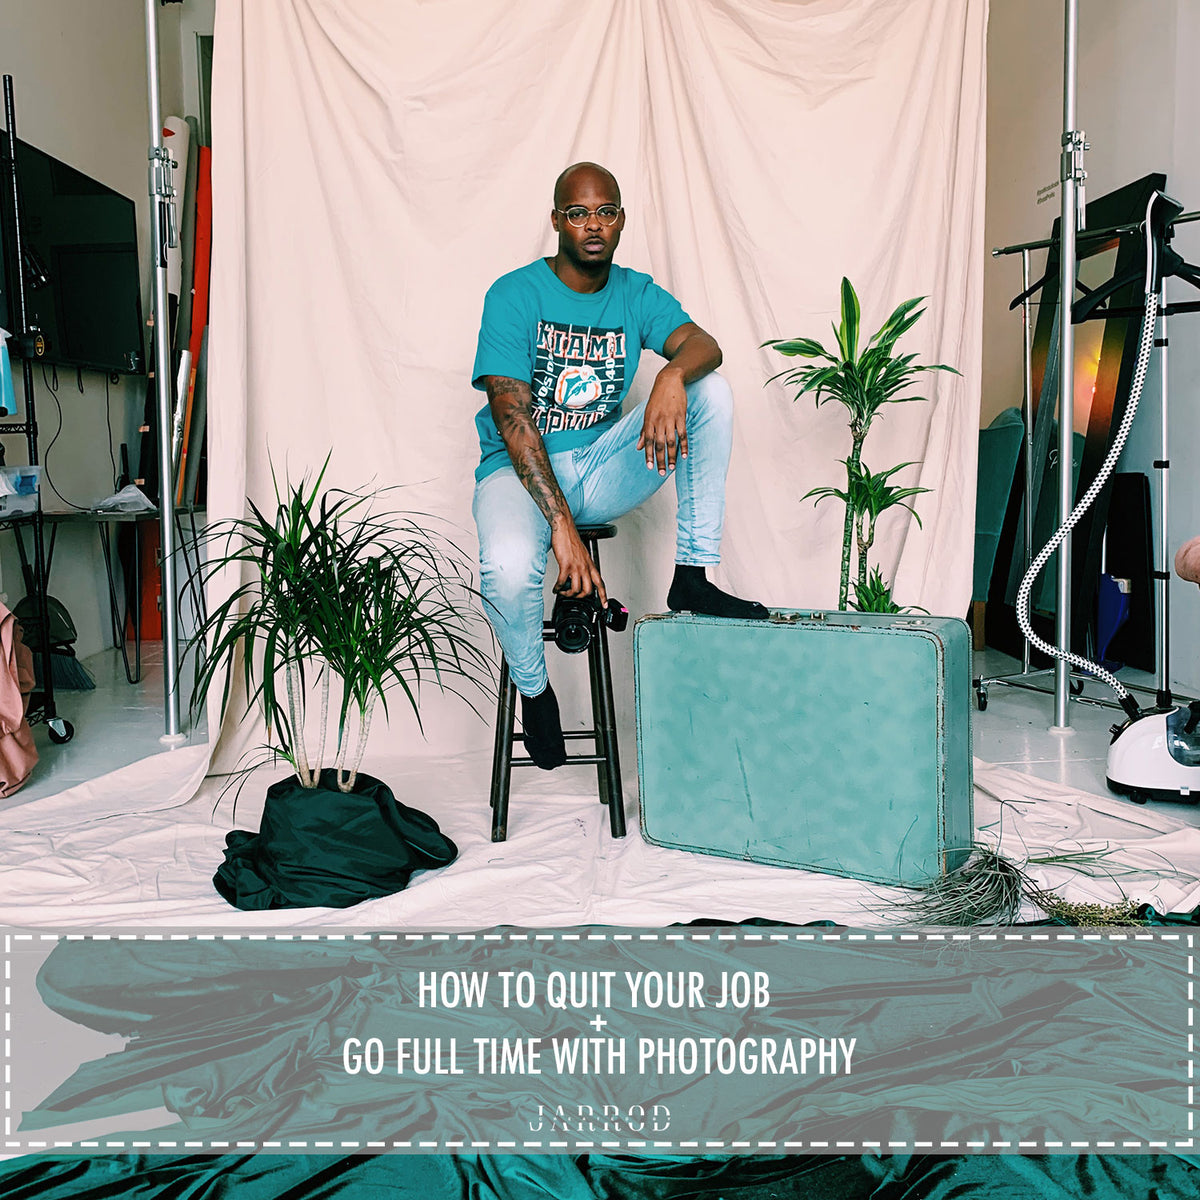 How To Quit Your Job + Go Full Time With Photography